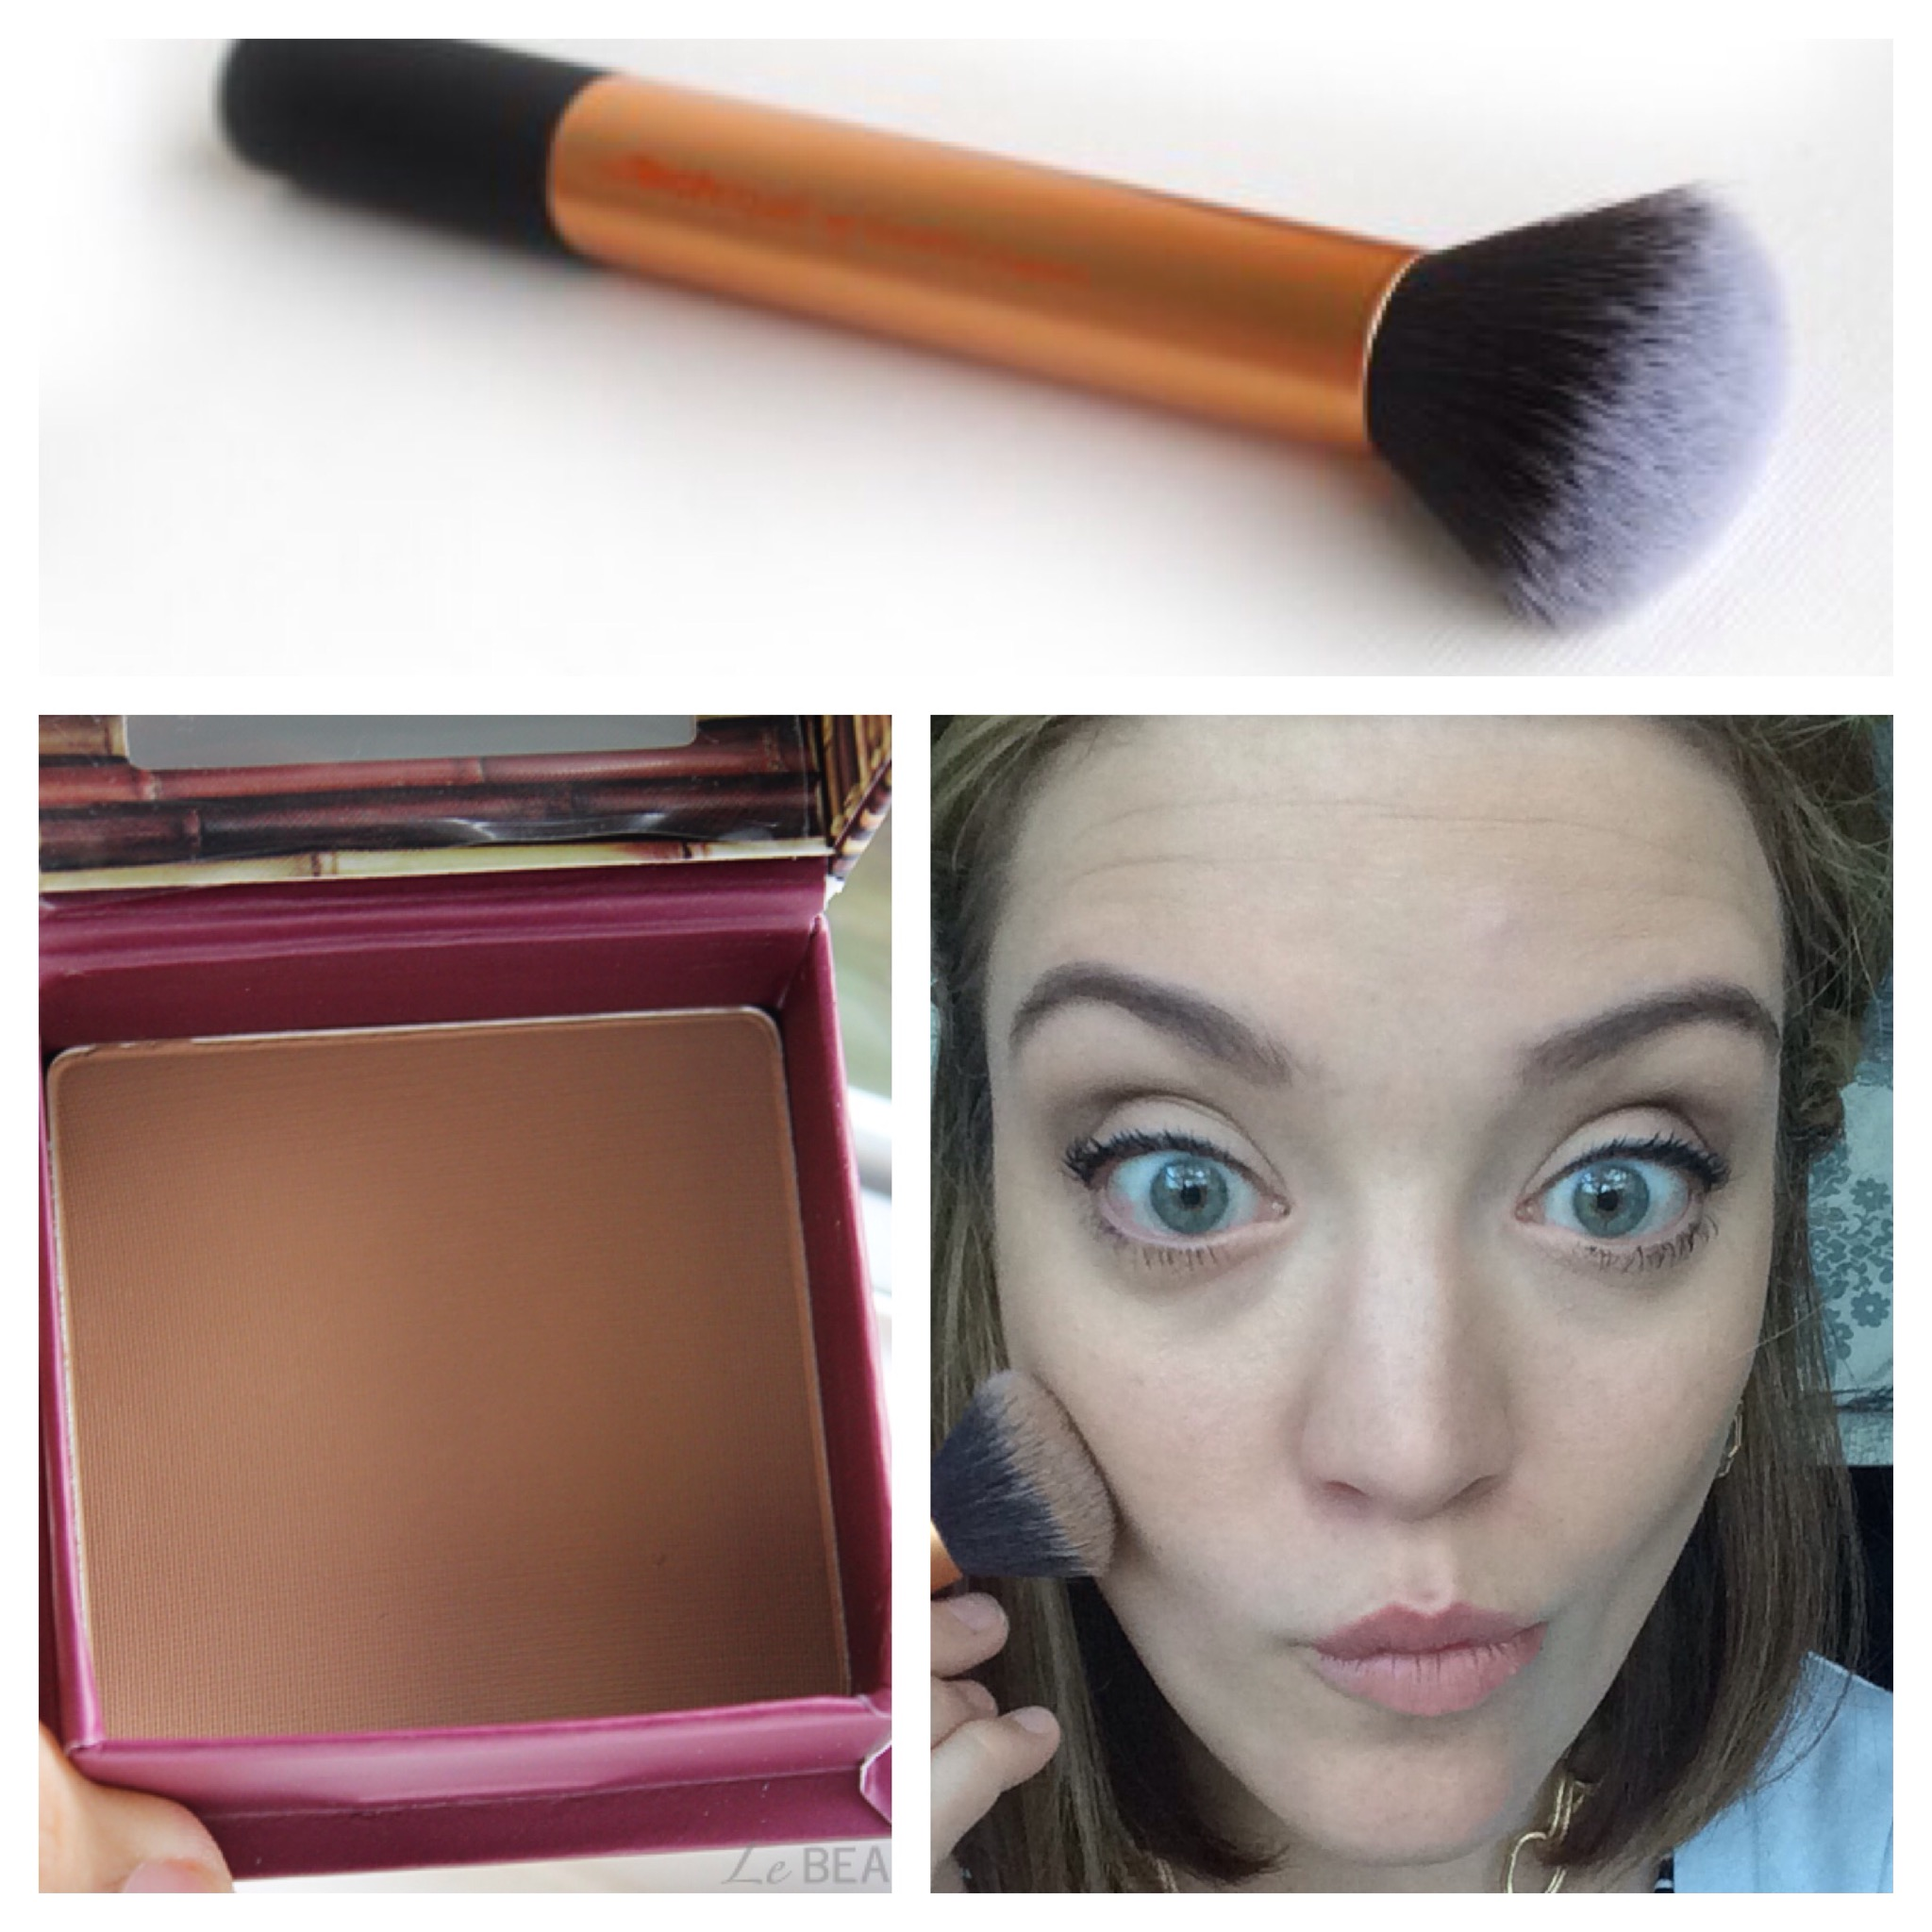 My everyday makeup look lollies and lattes its a bronzer that is matte not shimmery its also more brown than most bronzers you never want to use an orangey shimmery bronzer for contouring ccuart Images